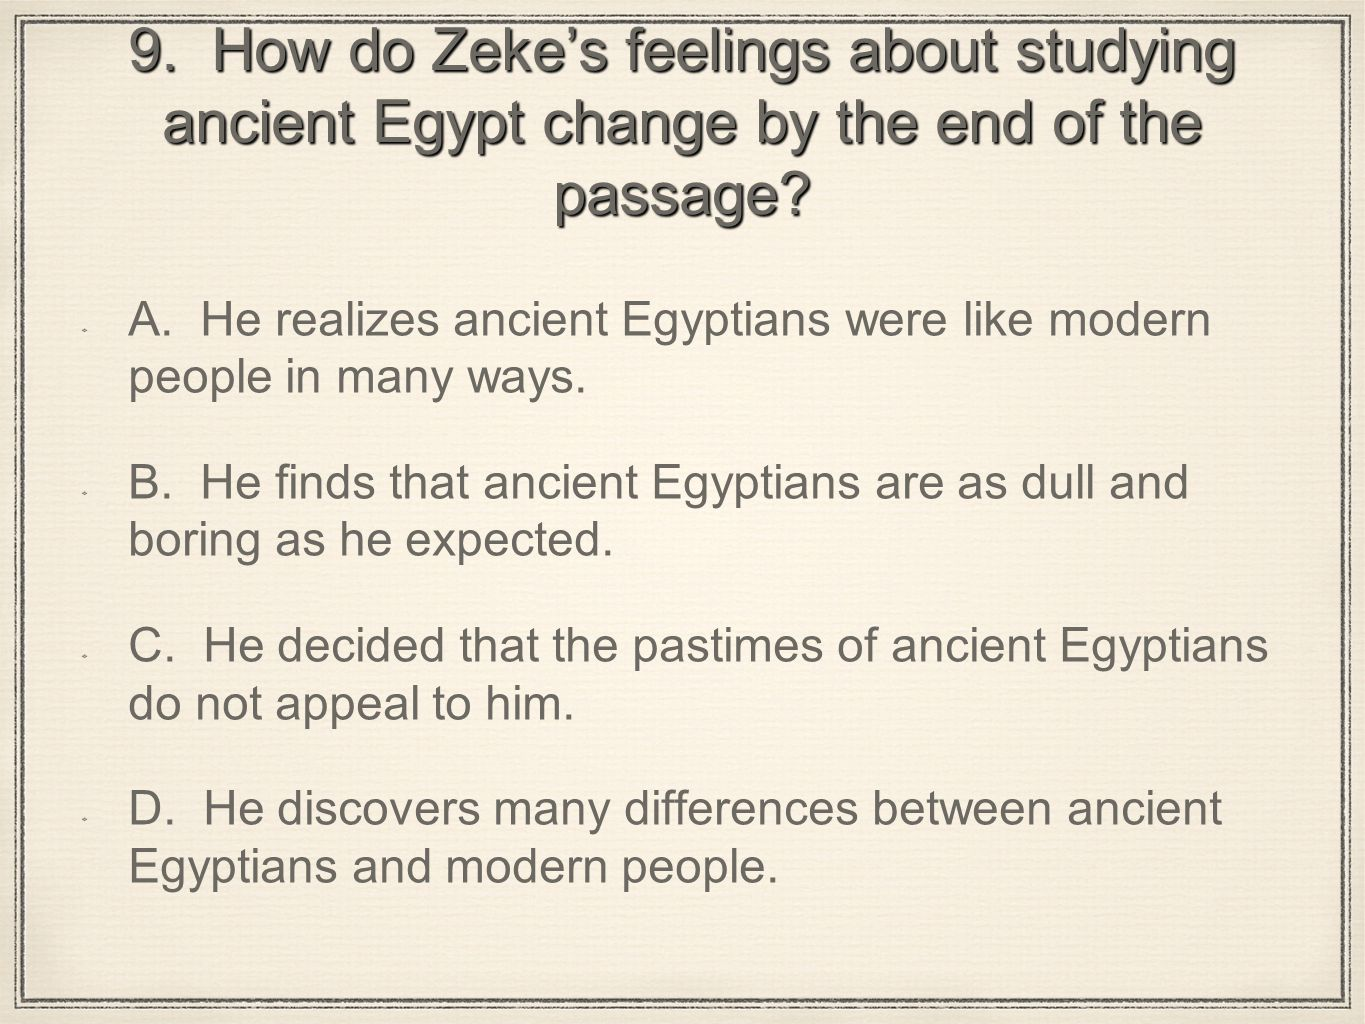 9. How do Zeke's feelings about studying ancient Egypt change by the end of the passage